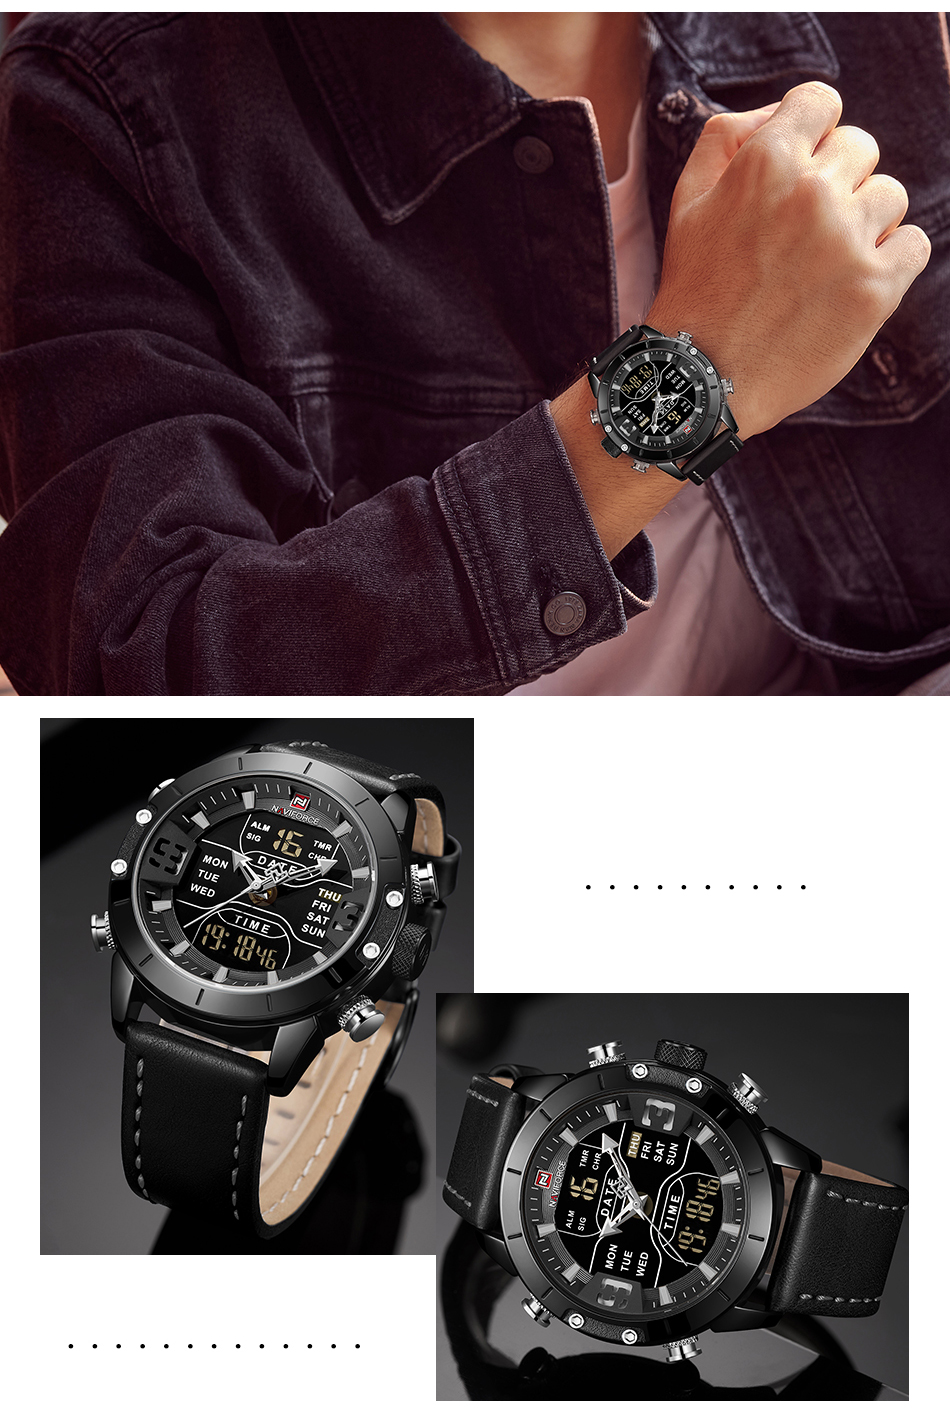 NAVIFORCE Mens Watches Top Brand Luxury Army Military Leather Mens Wristwatch Waterproof Digital Quartz Sports Watches Relogio (14)